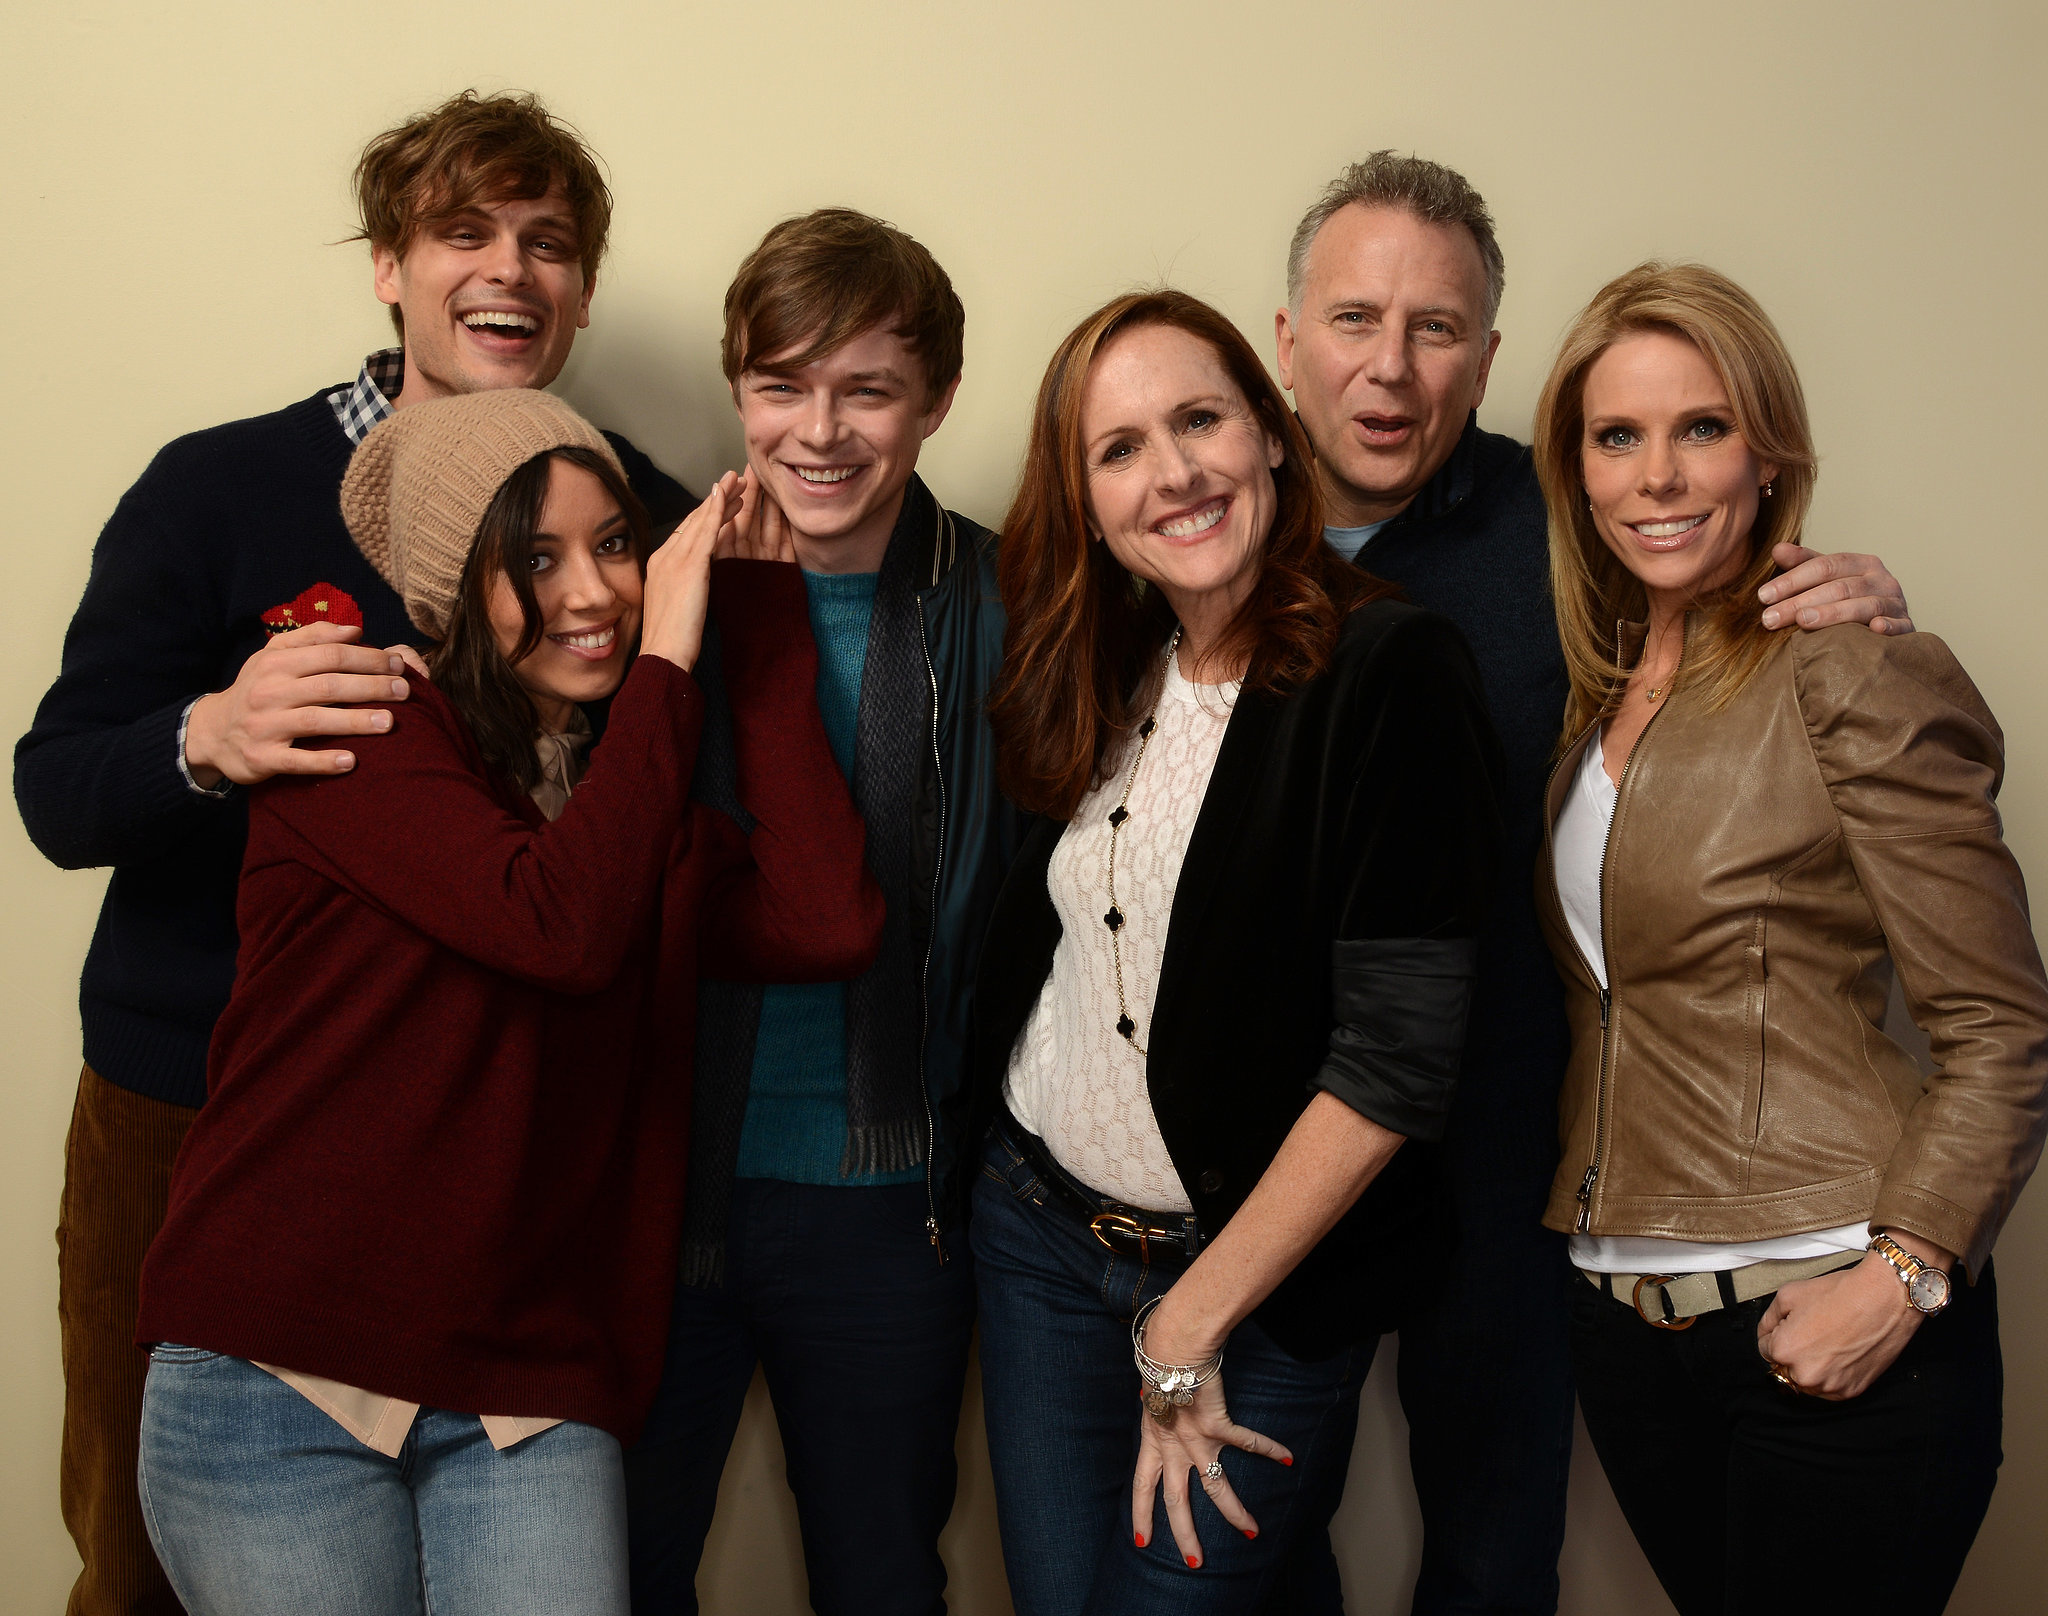 Life-After-Beth-cast-posed-together-Sunday